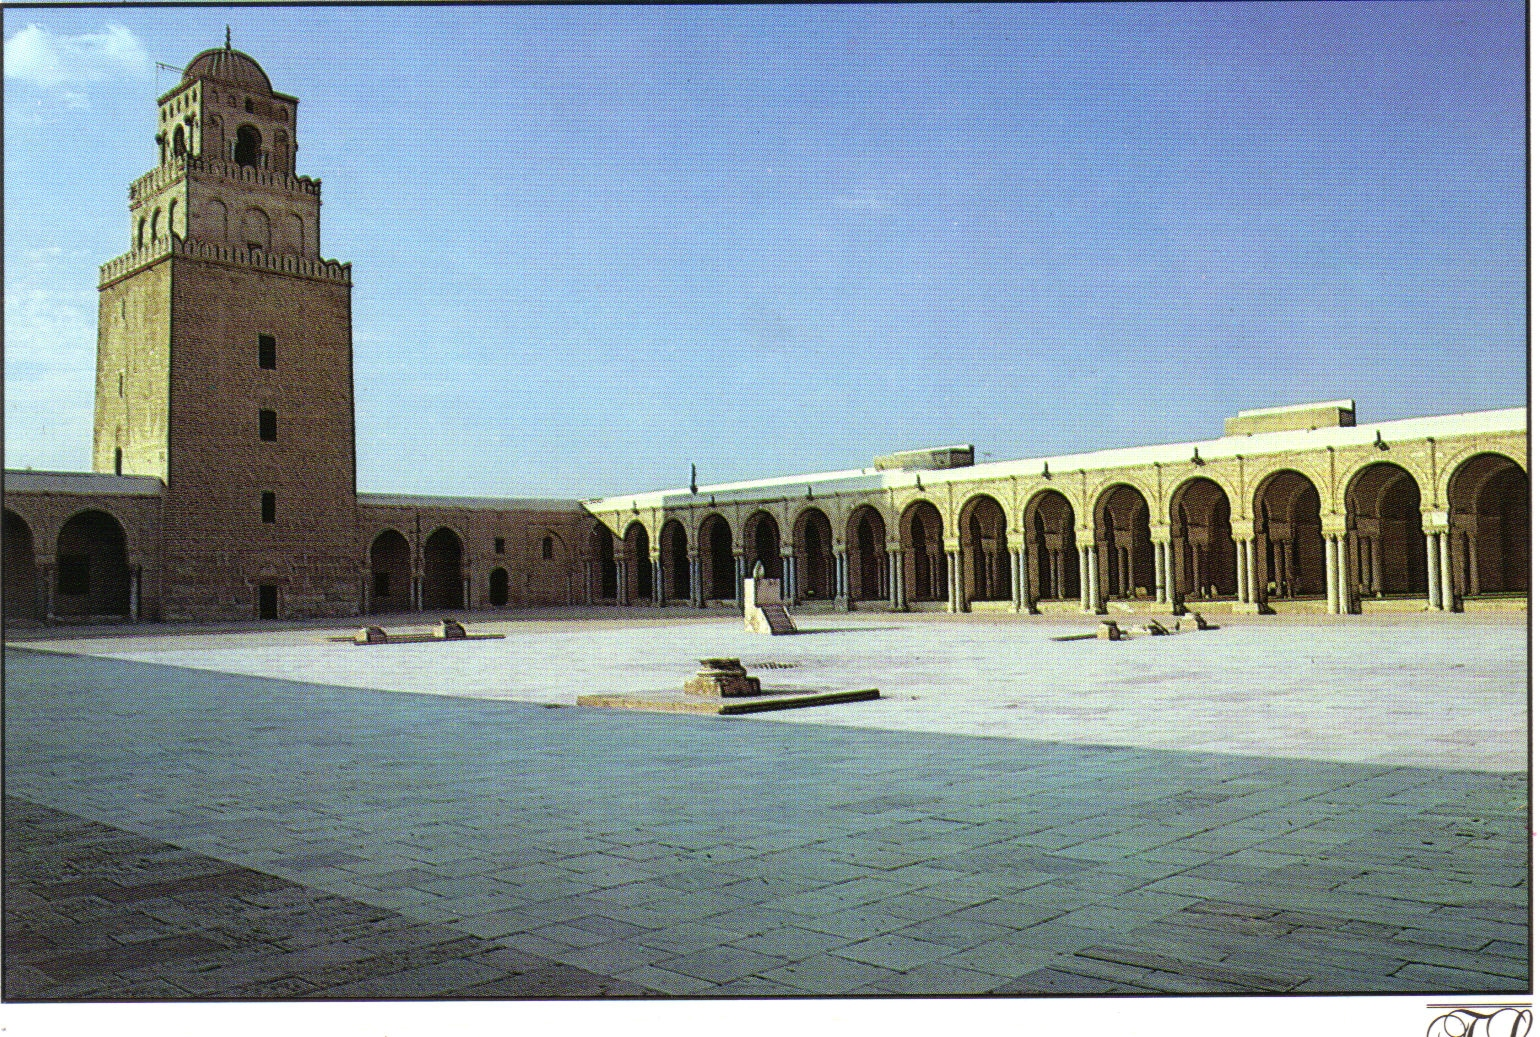 Kairouan Mosque Wiki The Great Mosque of Kairouan